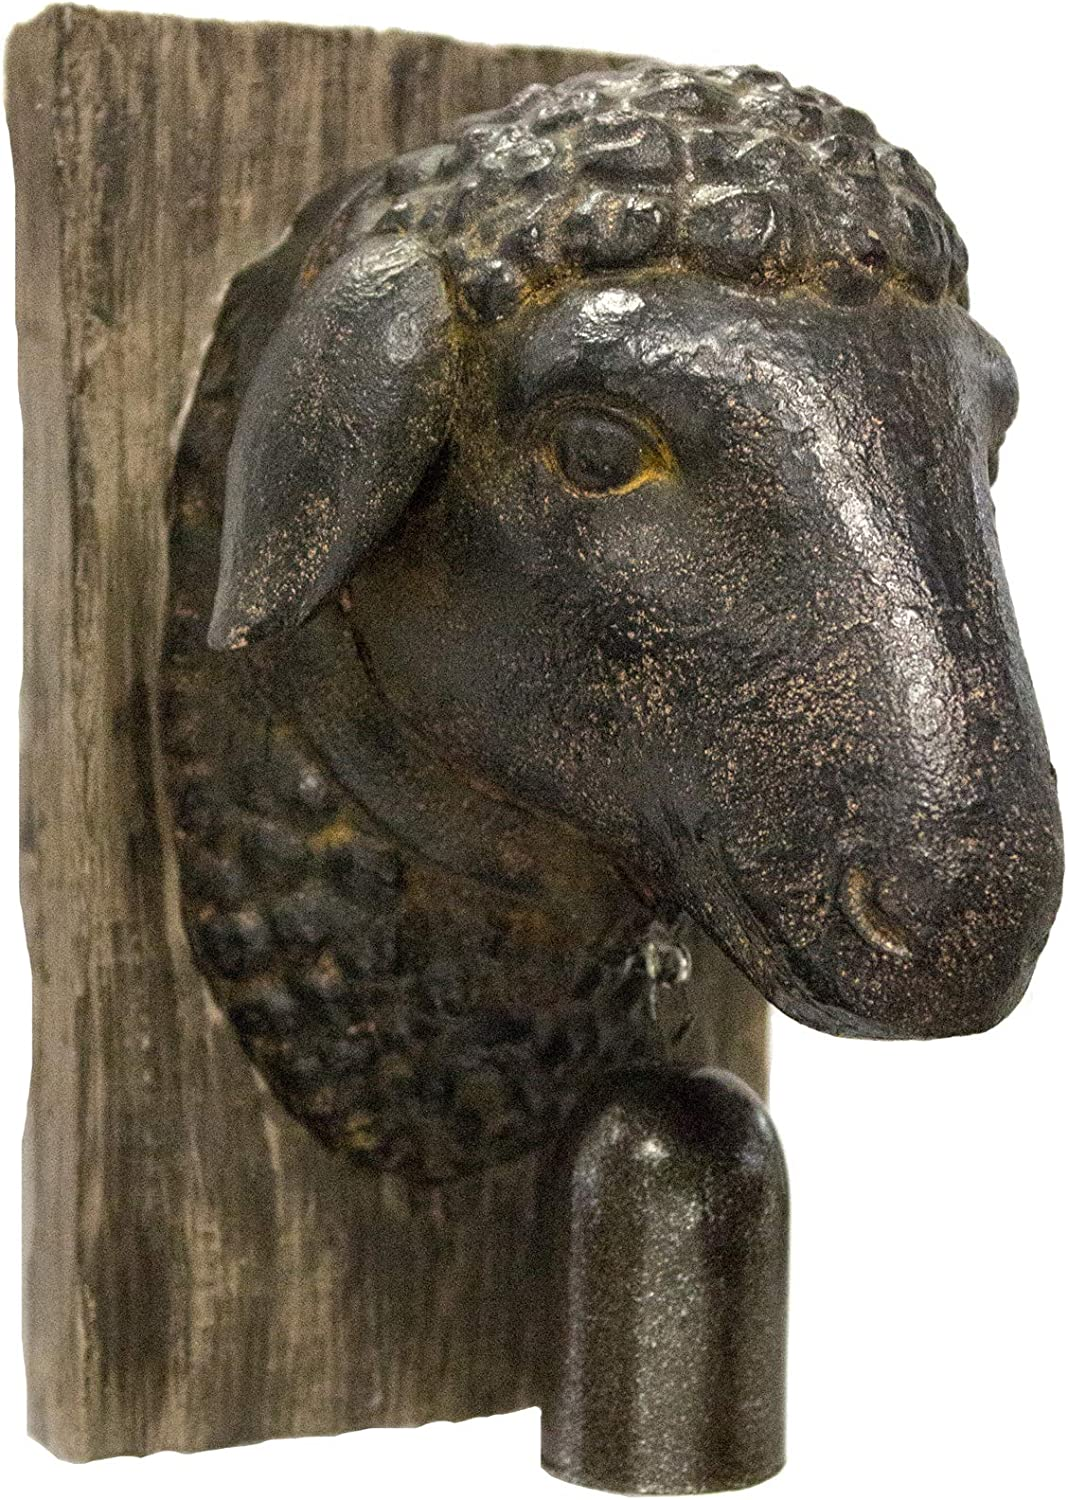 Sagebrook Home 11141 Sheep Head W/Bell Wall Plaque, Rust Polyresin, 5.75 x 4.5 x 7.5 Inches